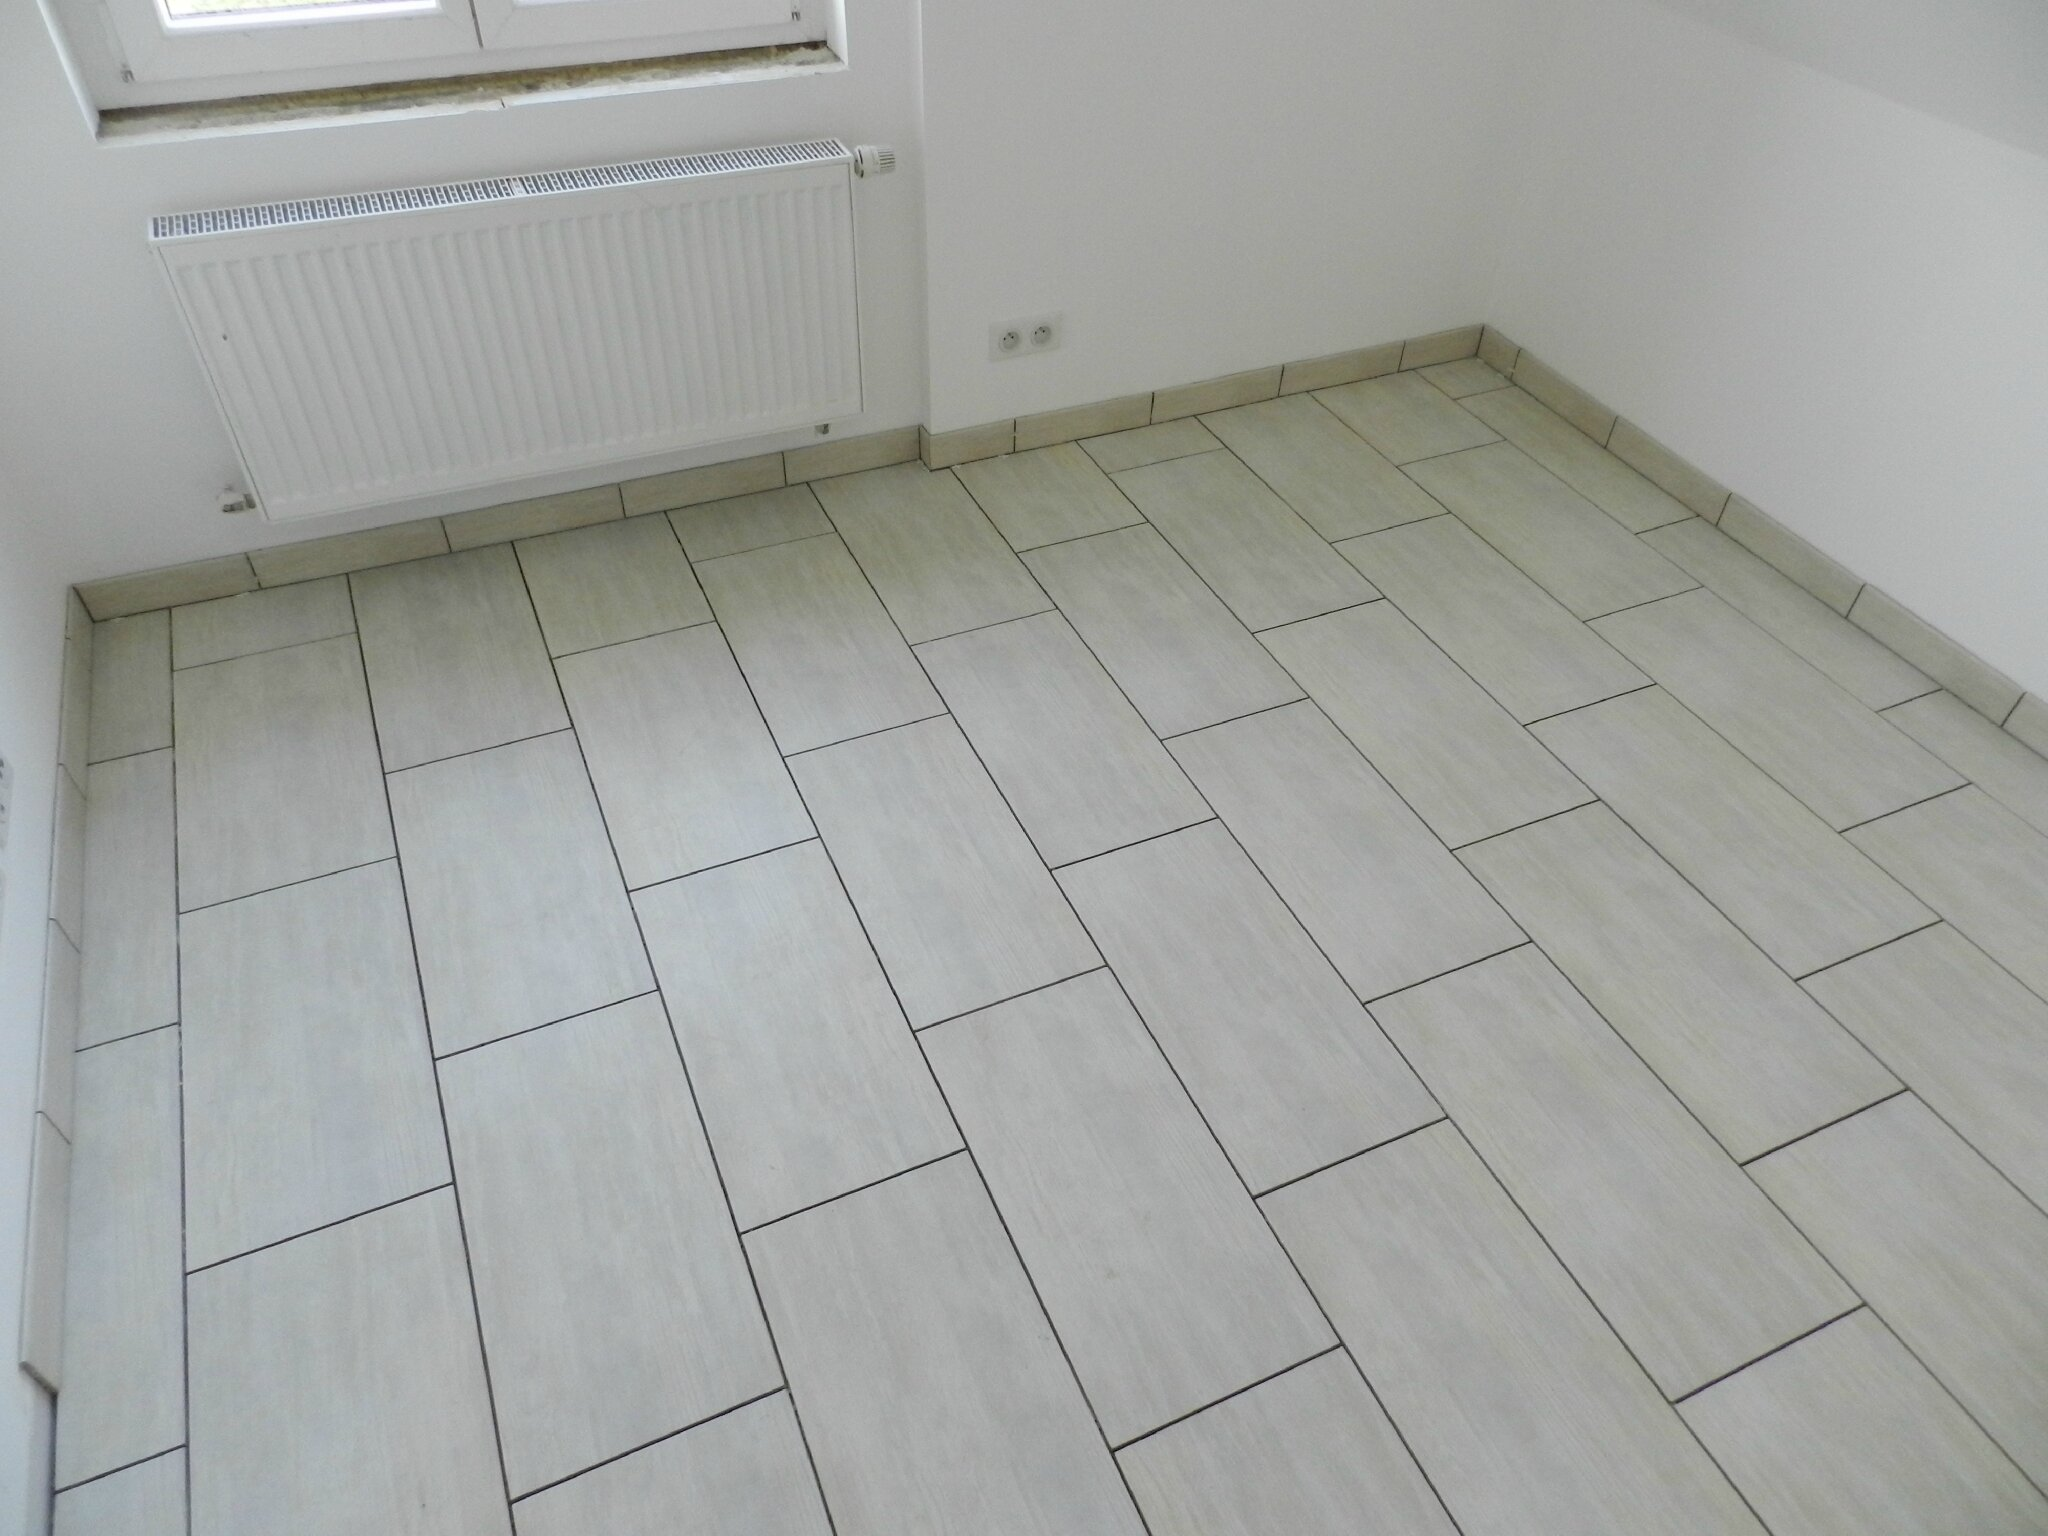 Top carrelage tournai pessac paris saint denis devis for Carrelage paris